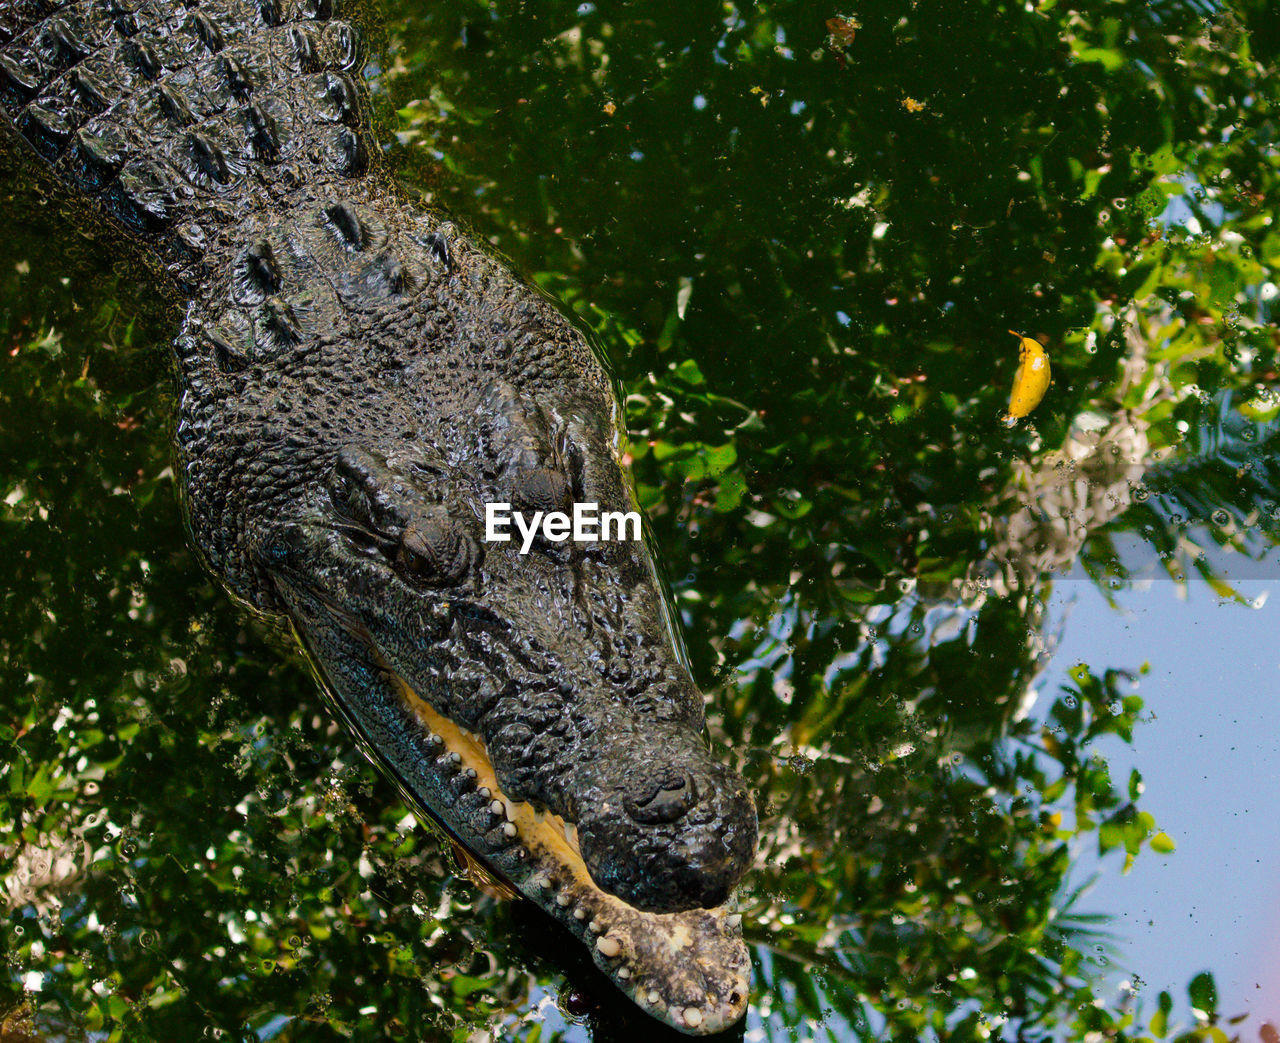 animal themes, one animal, animal wildlife, animal, animals in the wild, reptile, vertebrate, tree, plant, crocodile, no people, warning sign, nature, animal body part, sign, branch, day, underwater, alligator, water, outdoors, animal head, animal scale, swamp, snout